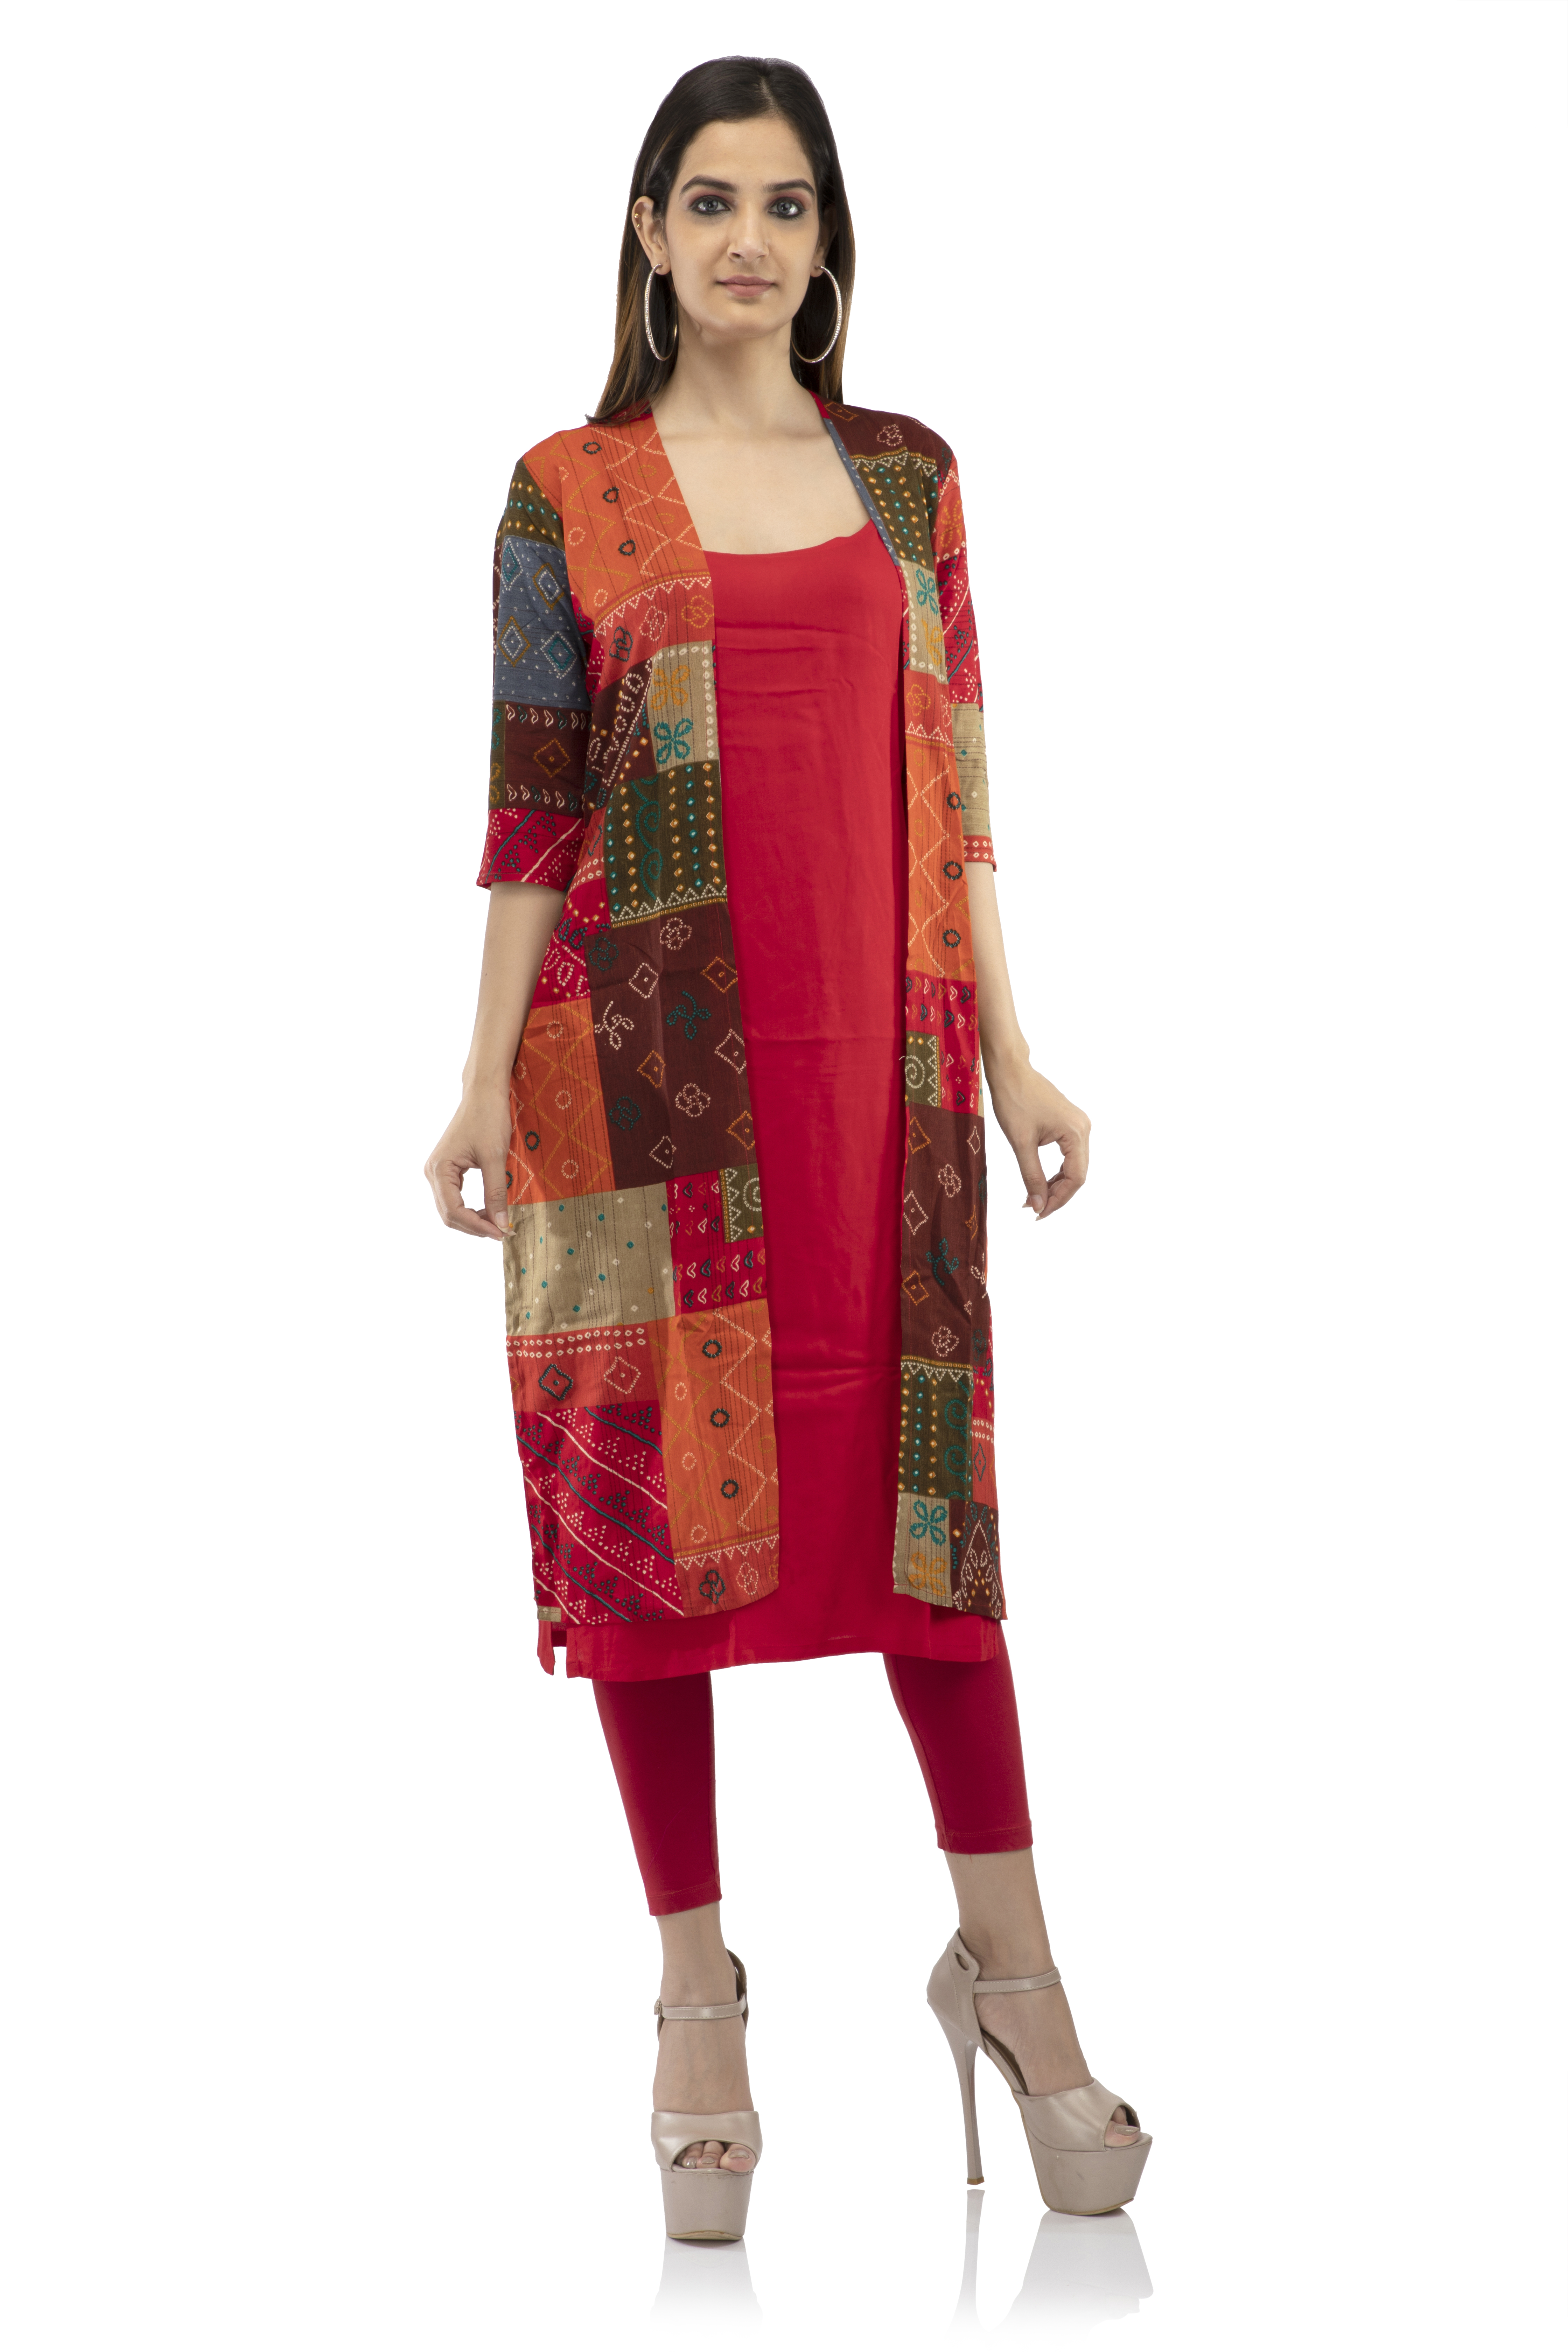 becoming | All over printed Mutli patch two piece kurti